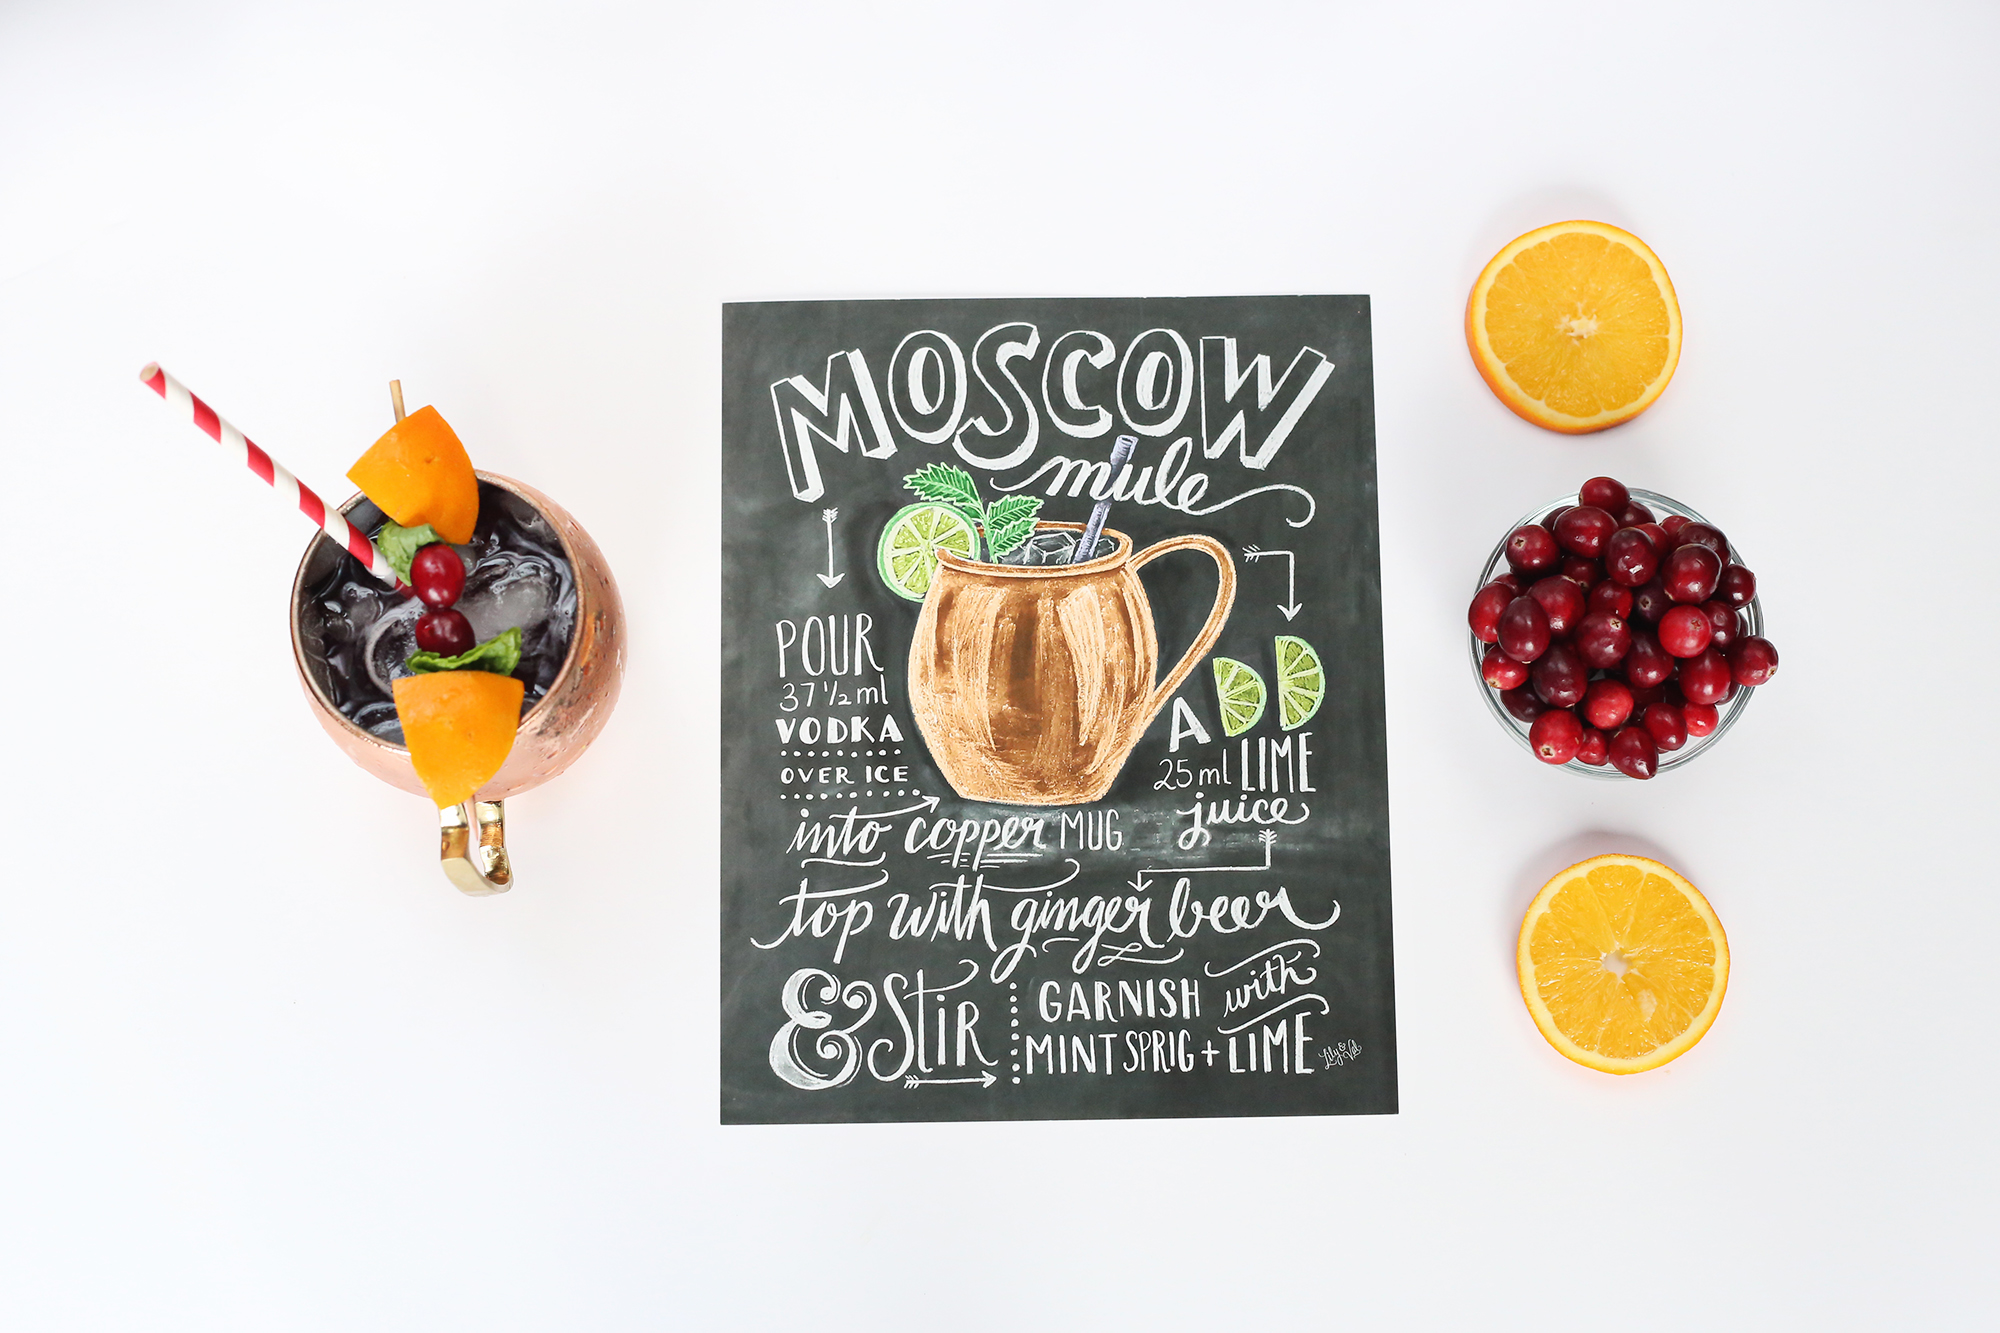 Inspired by our Moscow Mule Recipe print, we put a festive twist on the cocktail to make it the perfect christmas drink!